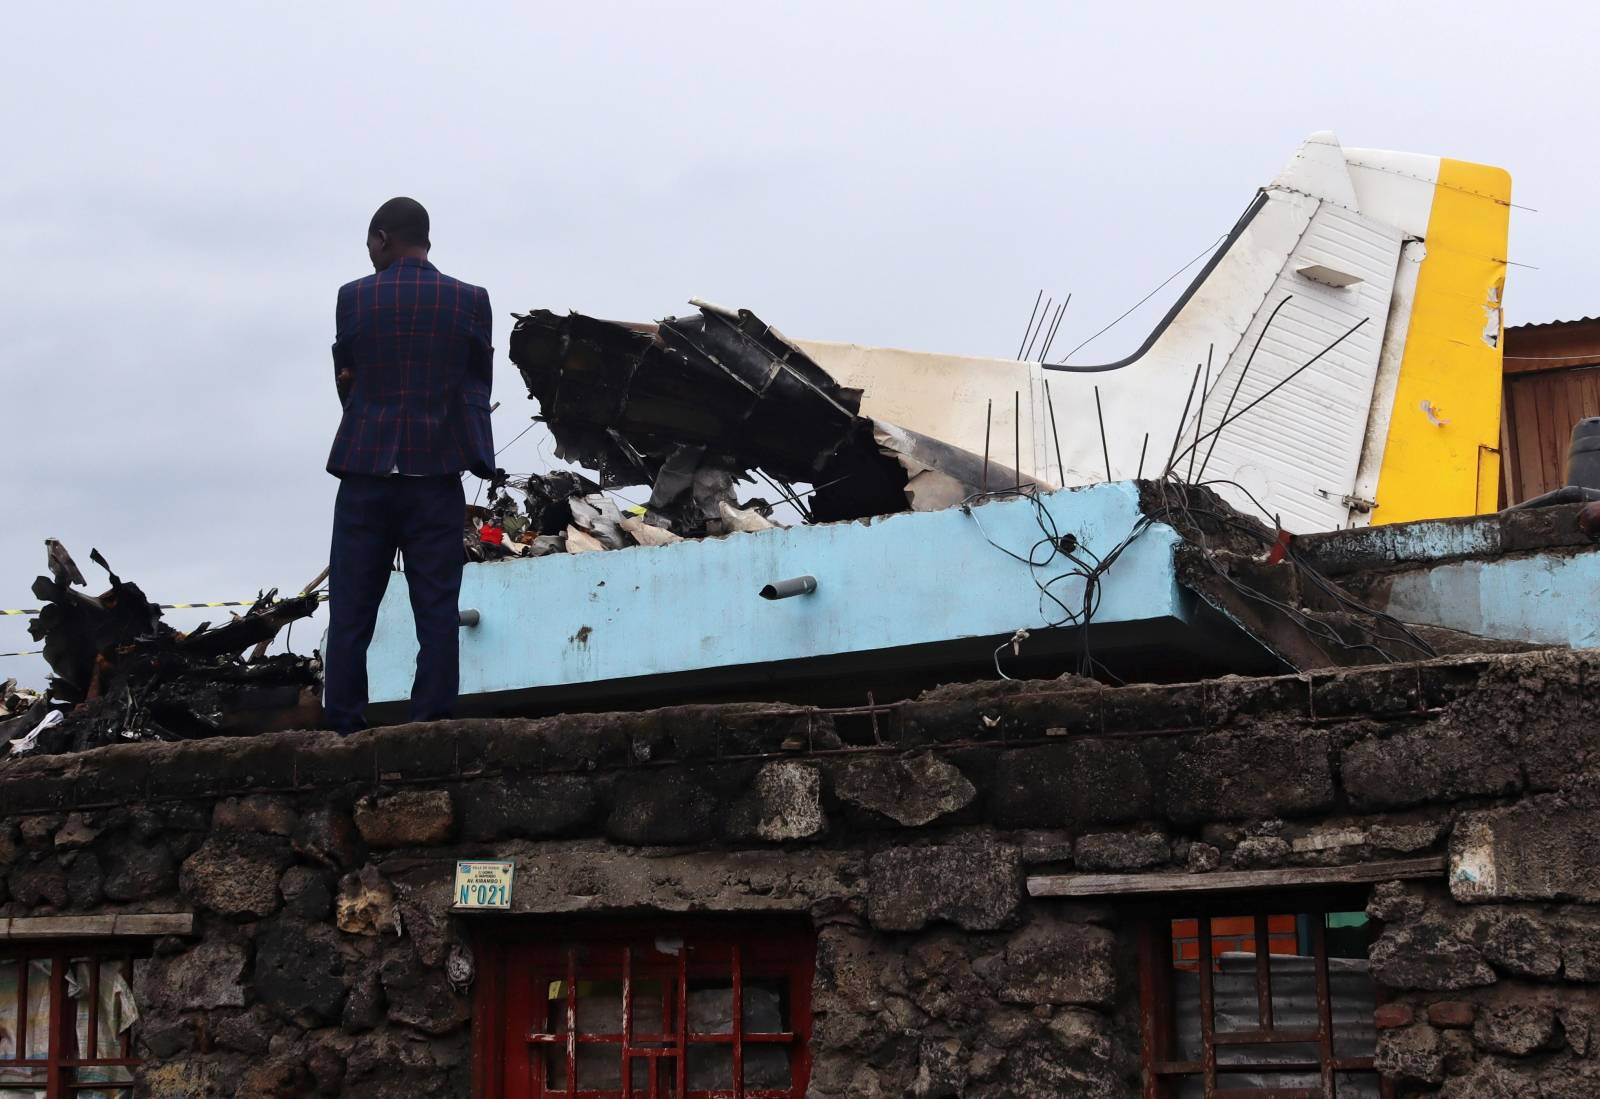 A man stands at the site where a plane Dornier 228-200 plane operated by local company Busy Bee crashed into a densely populated neighborhood in Goma